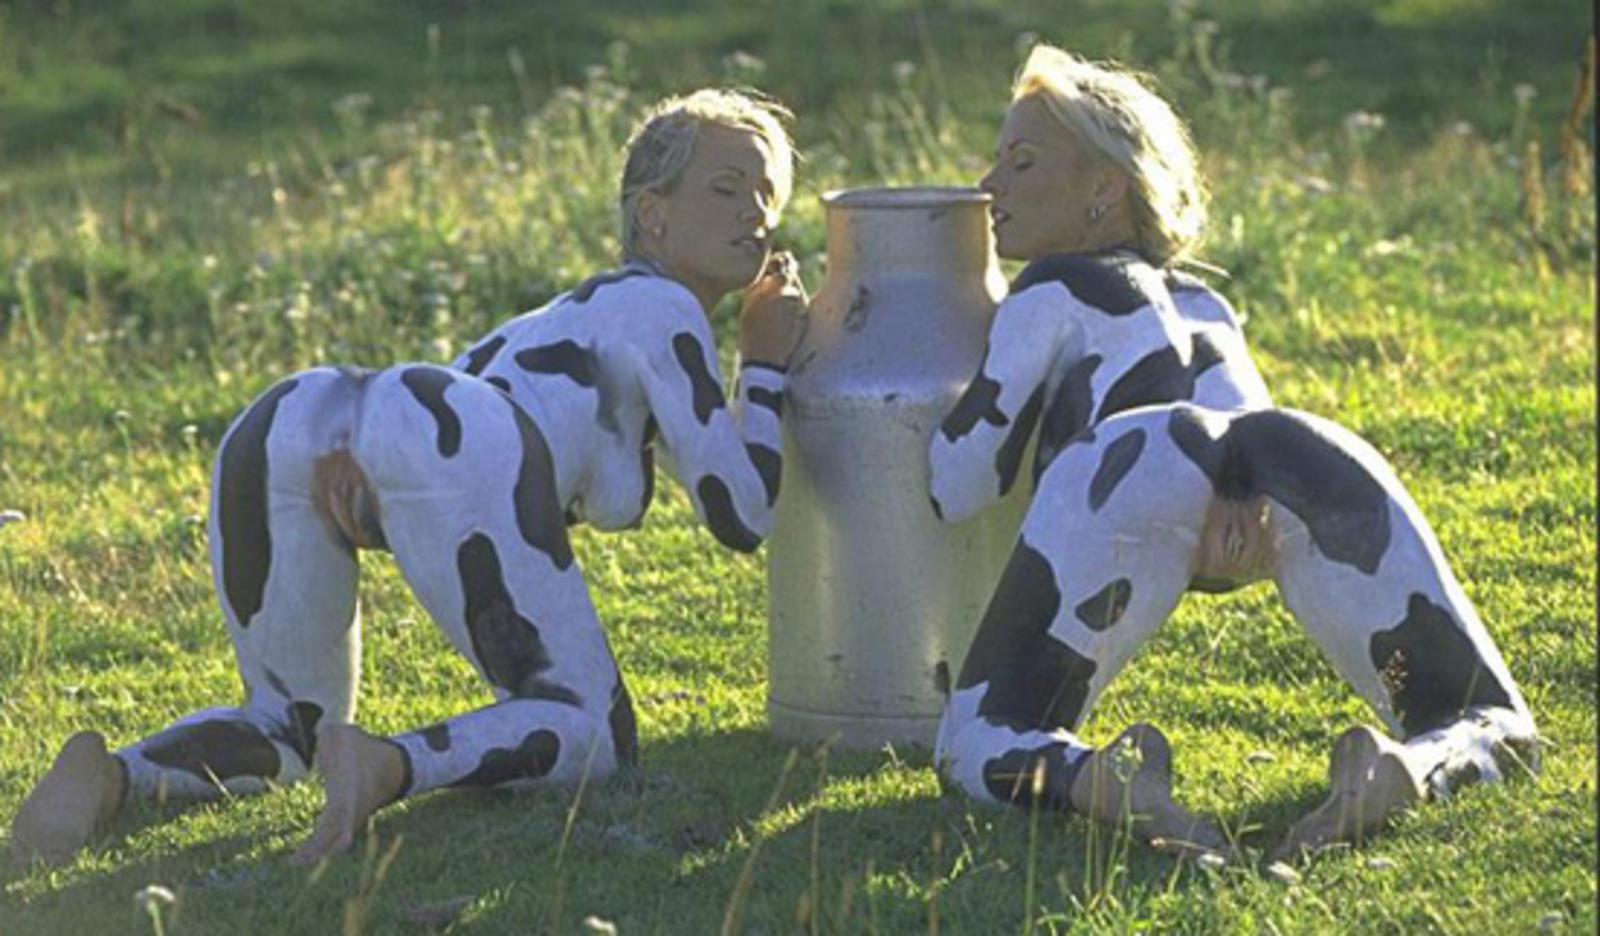 Cow sex hot image nsfw pic